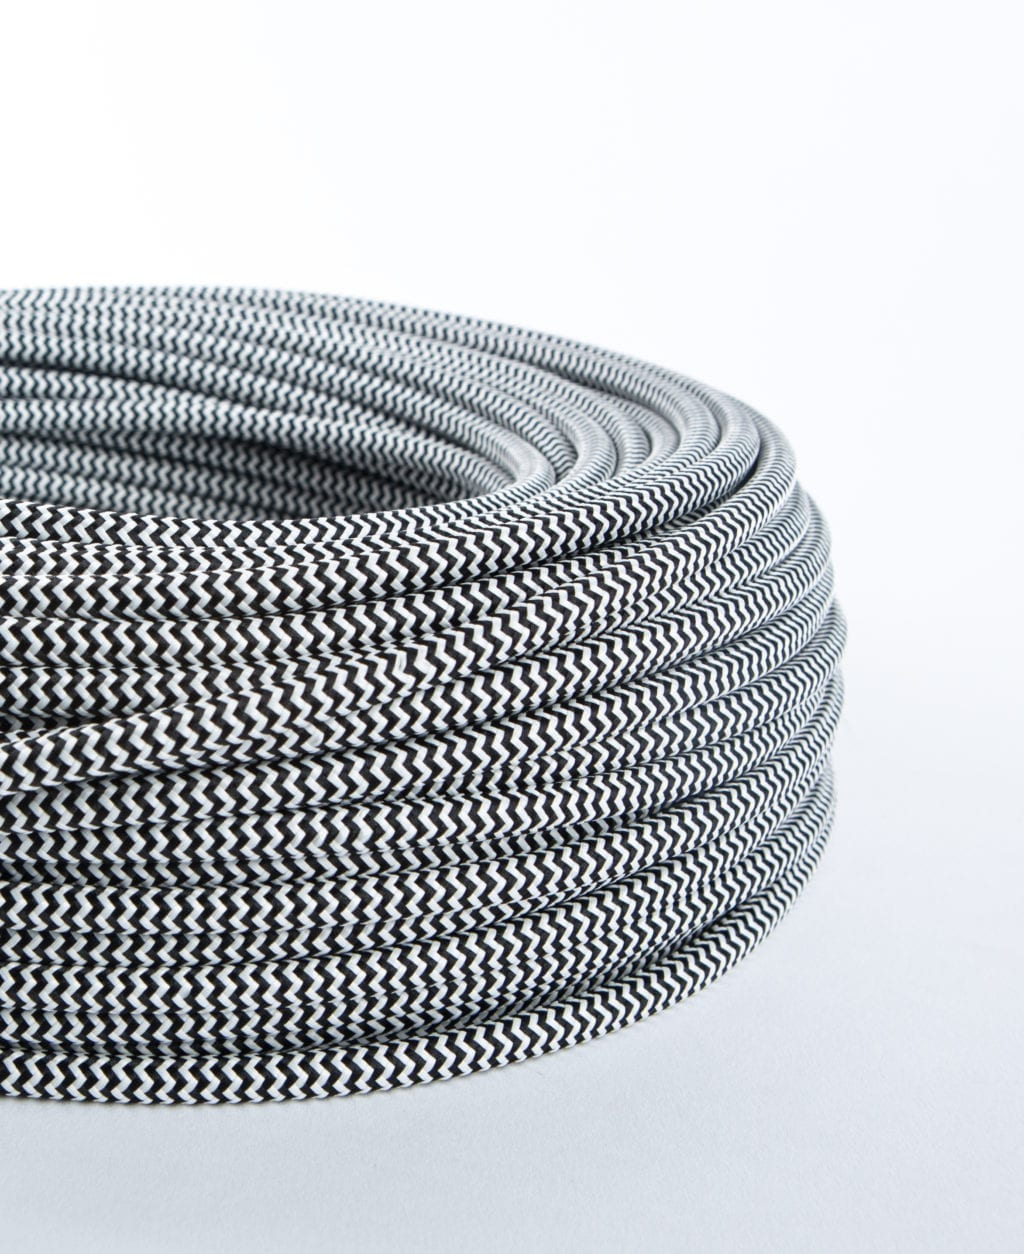 closeup of black and white zig zag fabric cable coil against white background